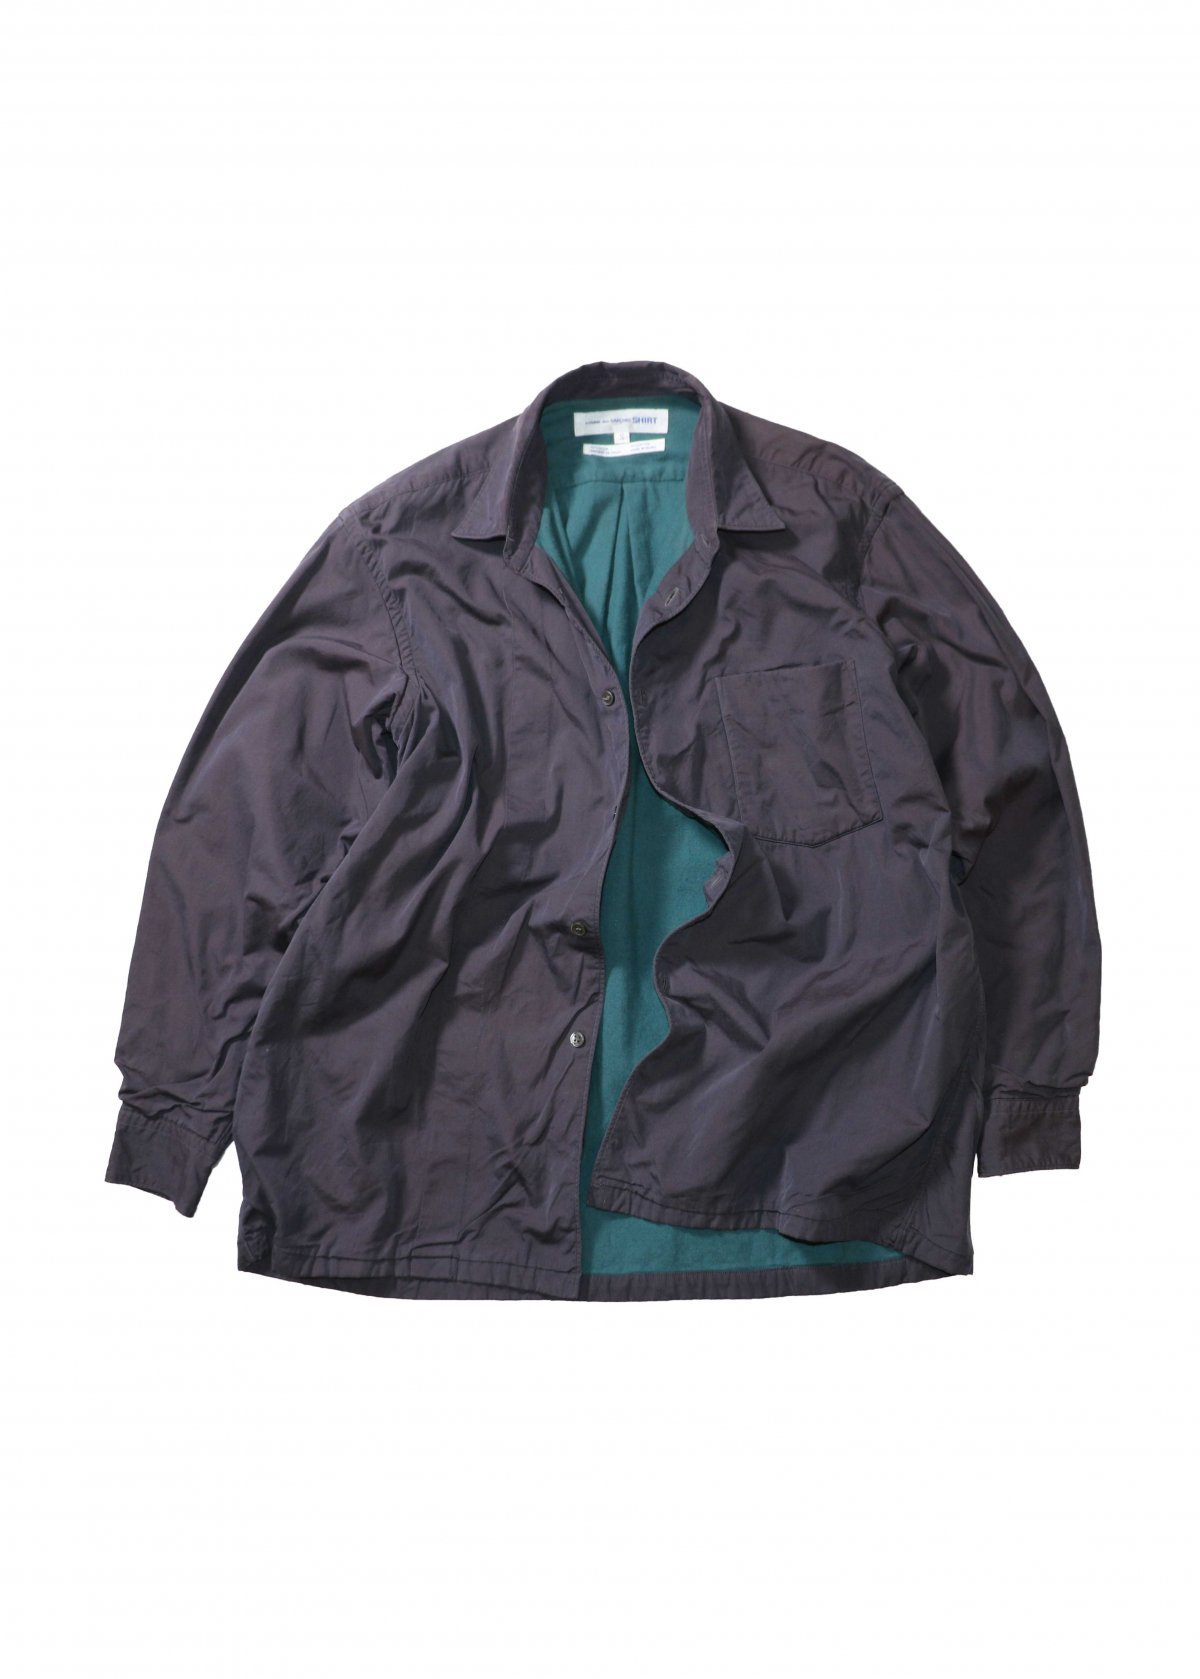 I&I 古着 通販 COMME des GARCONS SHIRT(MADE IN FRANCE) 詳細画像